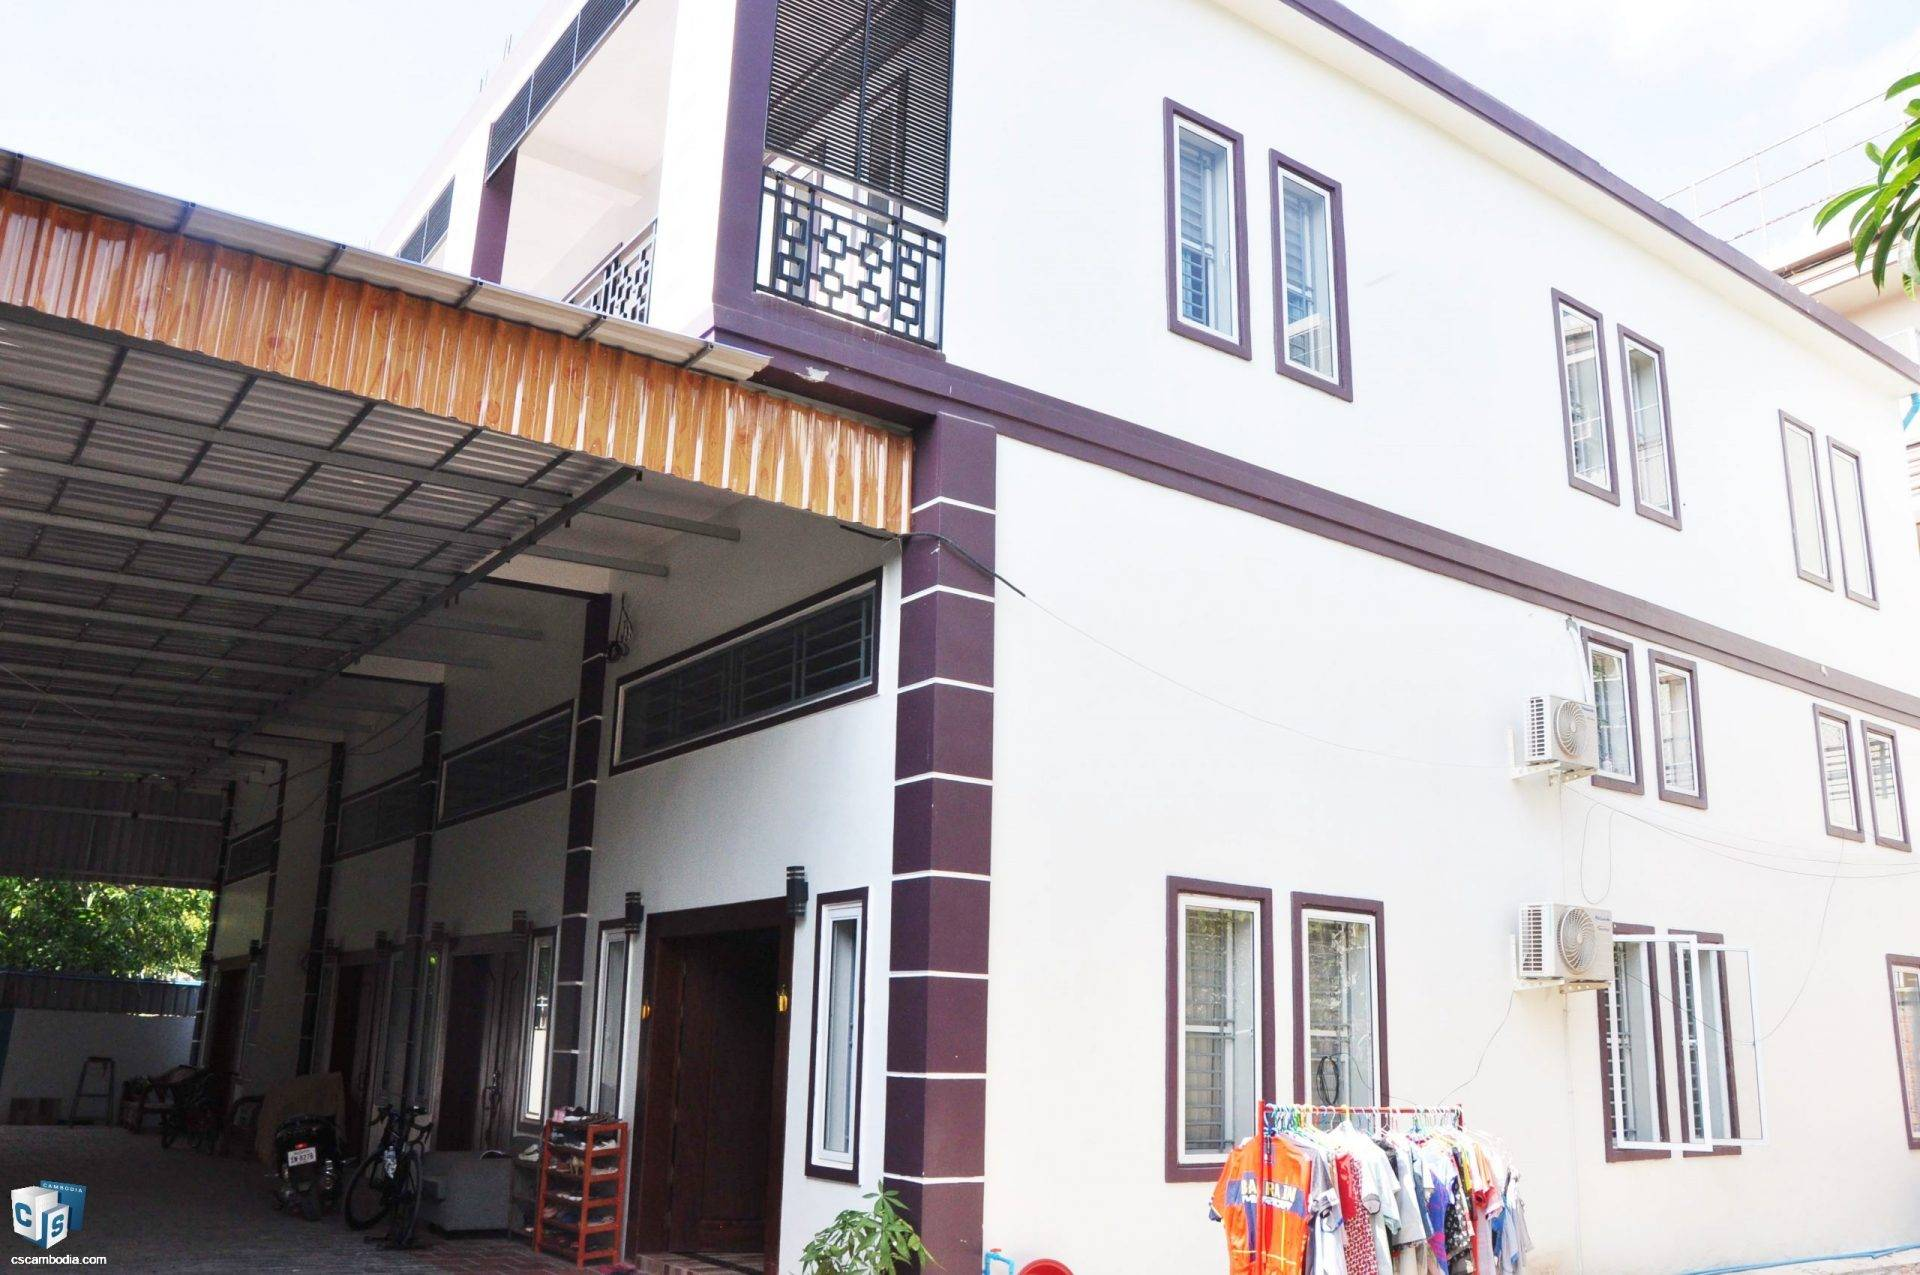 4 Bedroom House – For Sale – Svay Dangkom Commune – Siem Reap